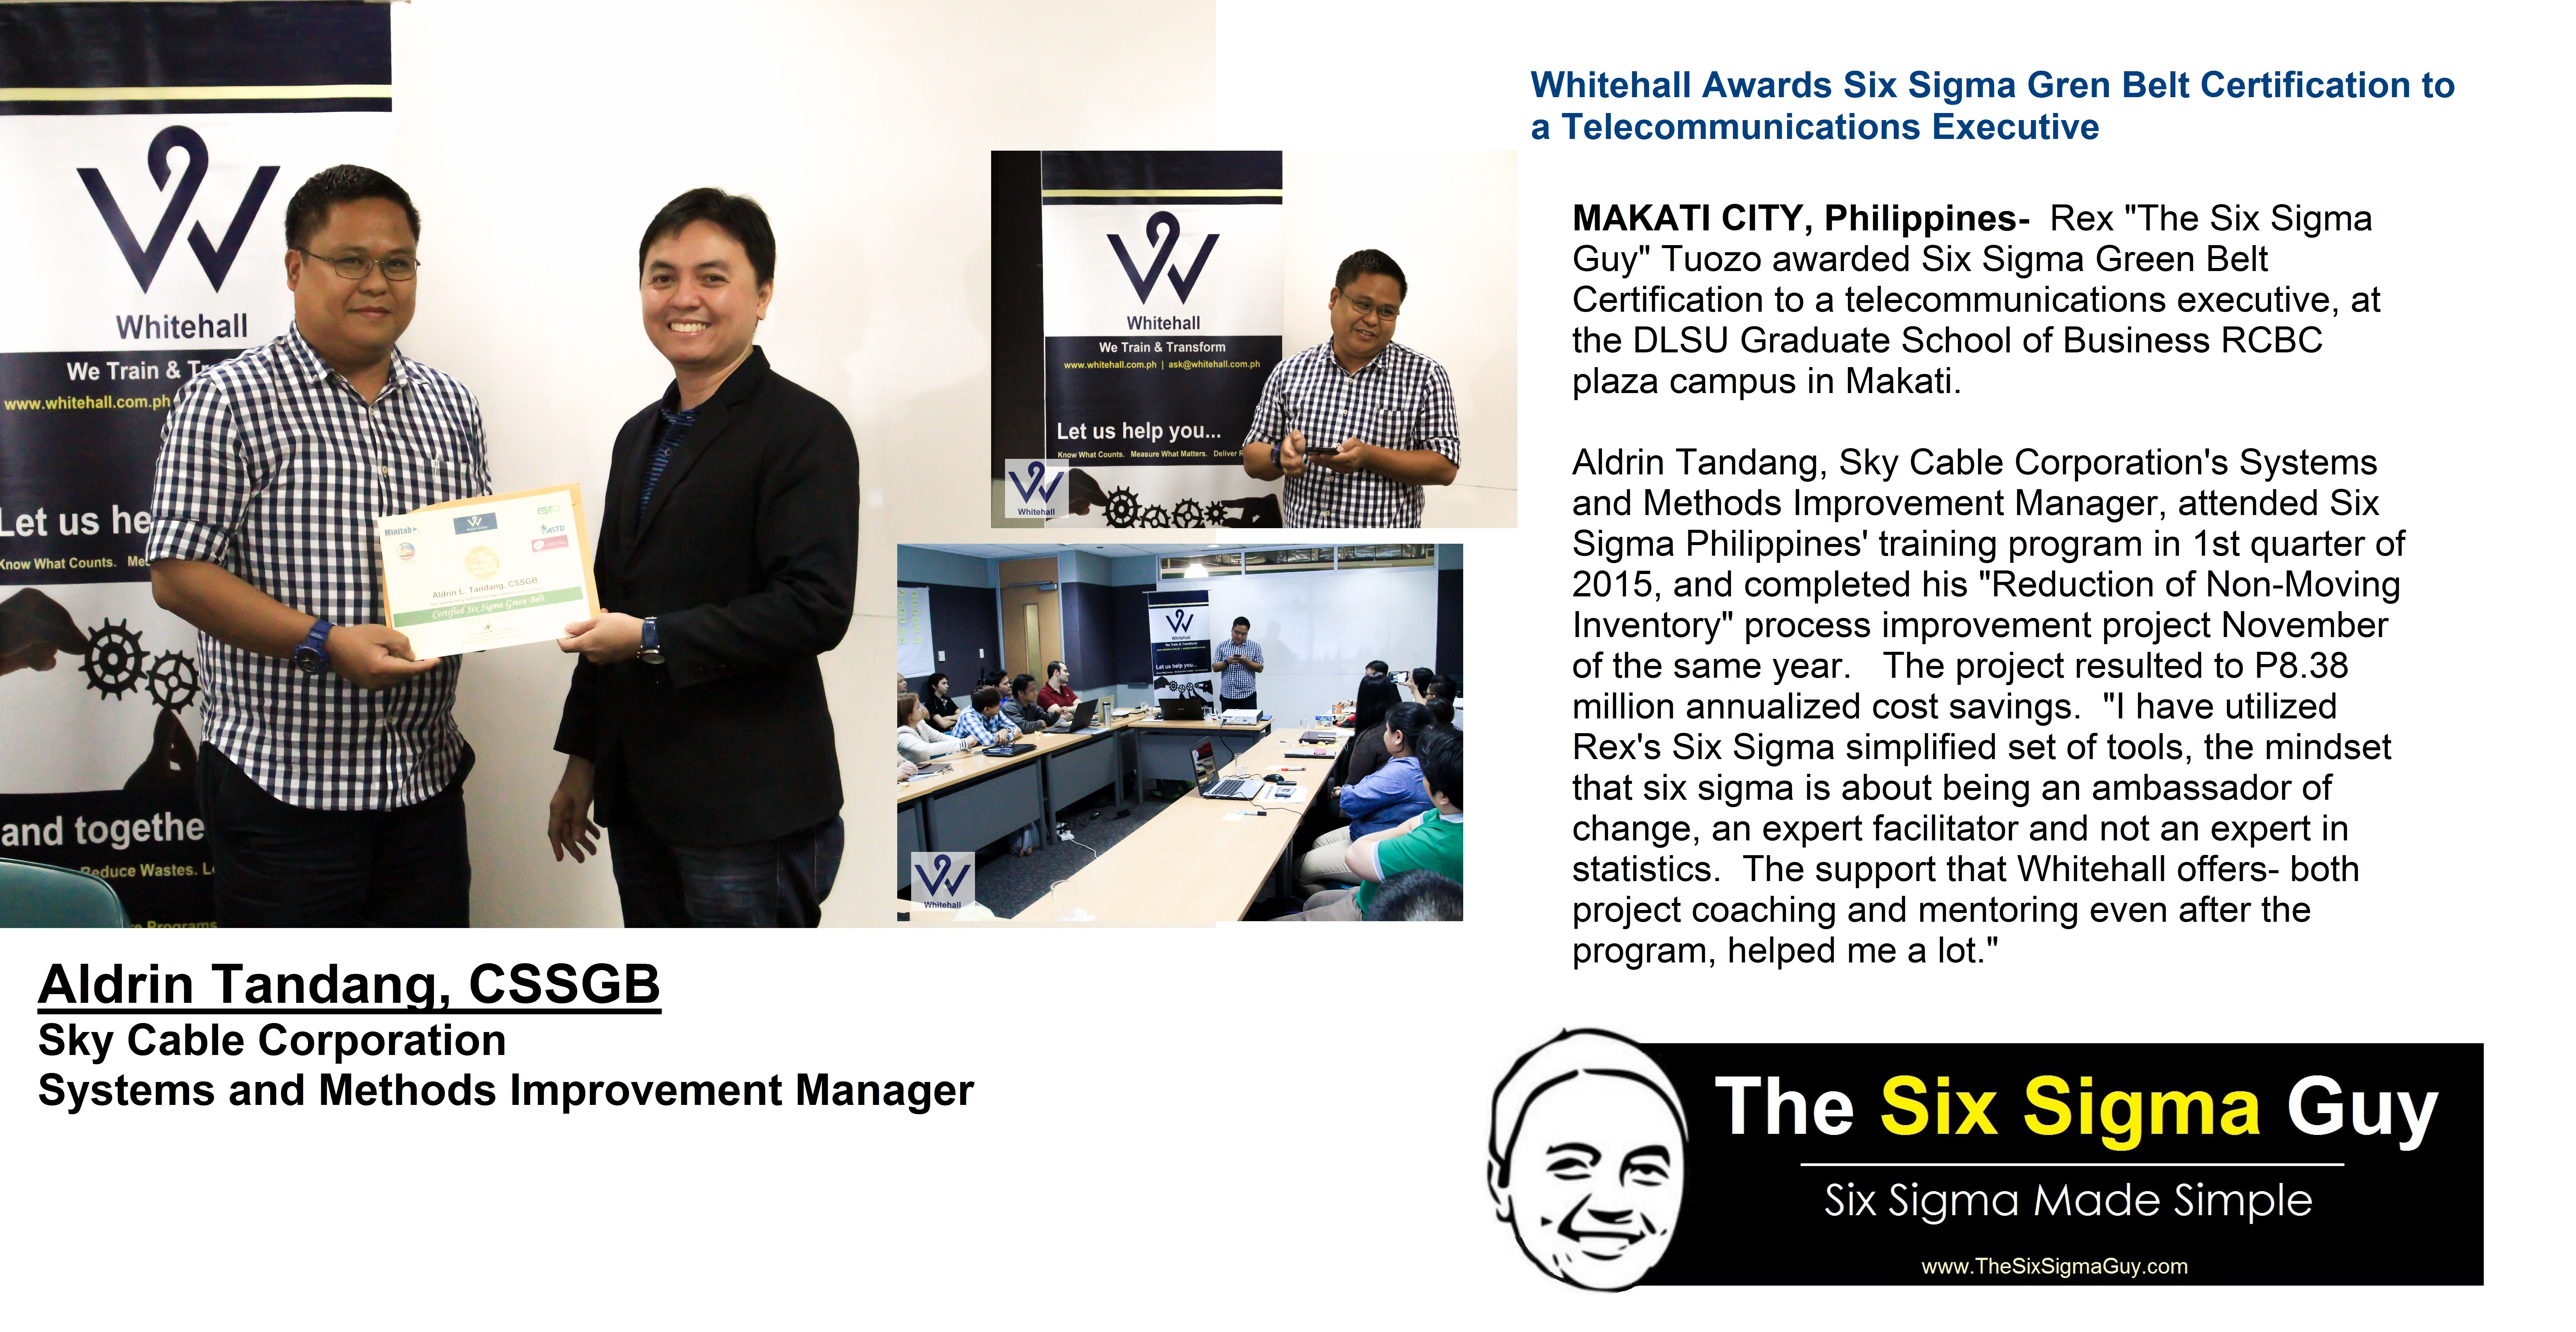 Makati city philippines rex the six sigma guy tuozo awarded six makati city philippines rex the six sigma guy tuozo awarded six sigma green belt certifications to a telecommunications executive and a bpo executive 1betcityfo Gallery